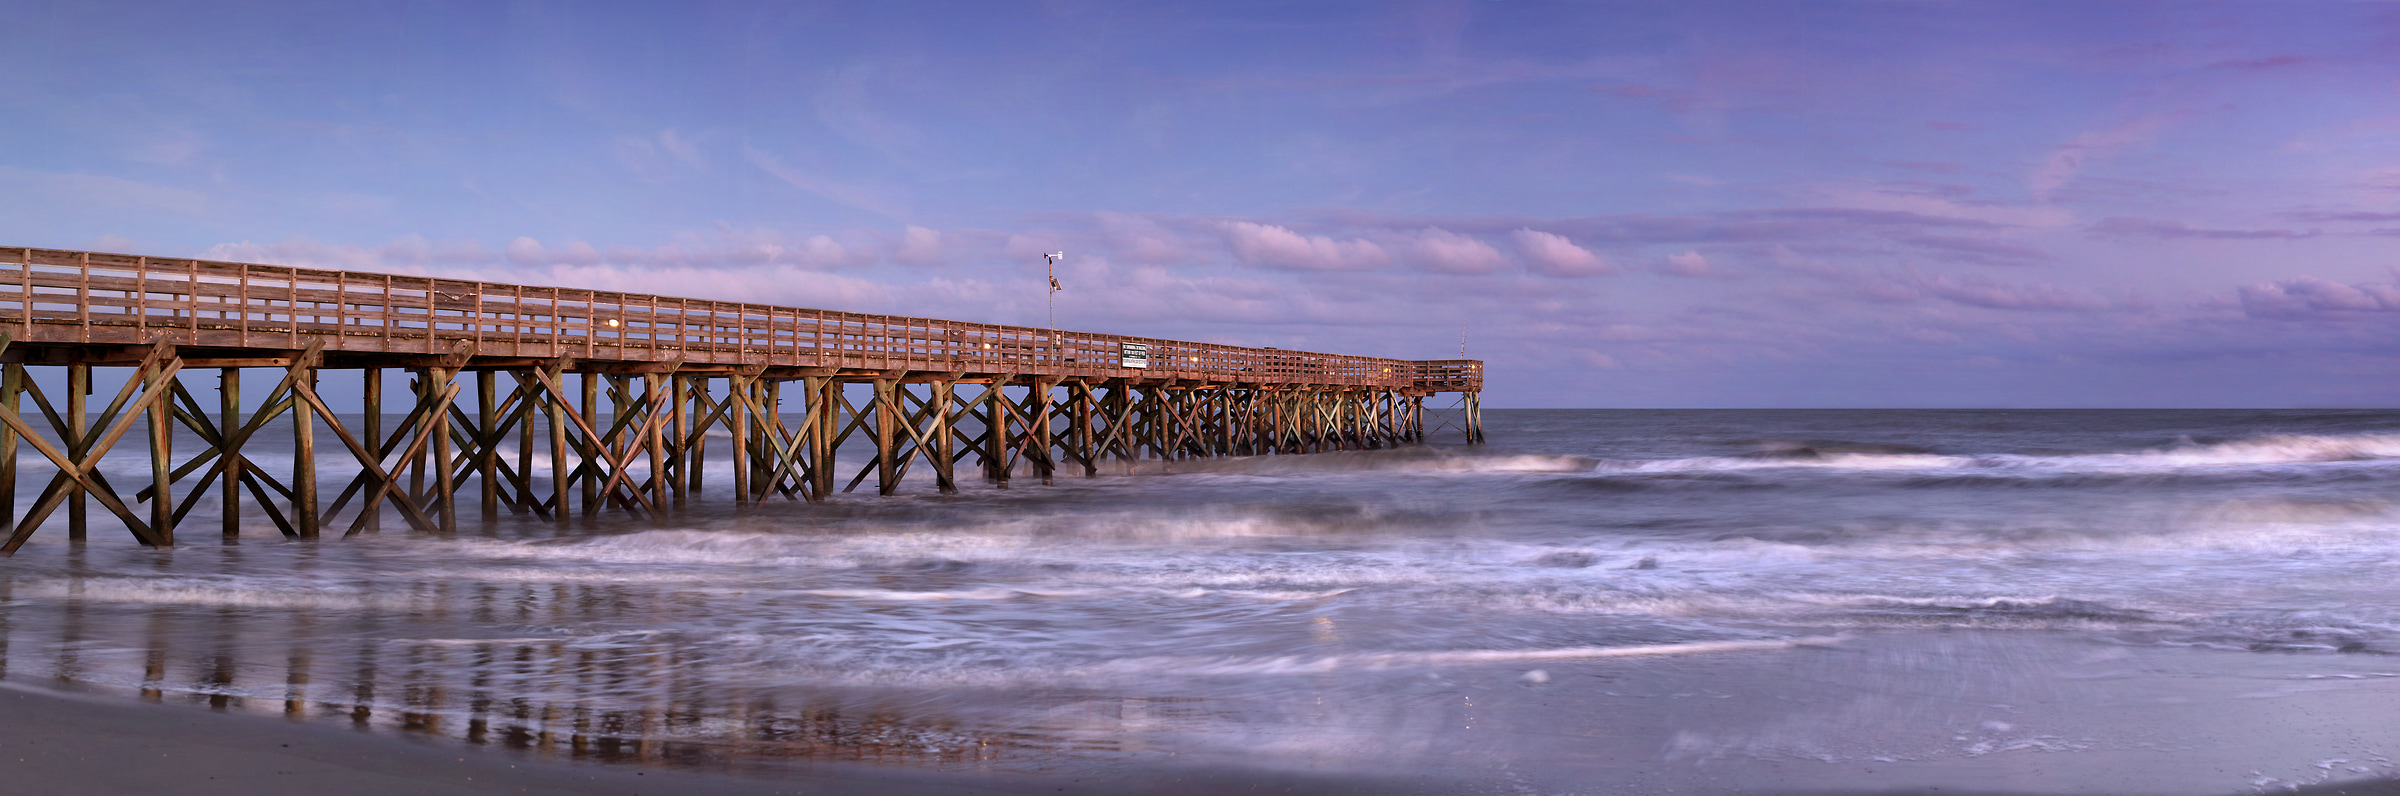 372 megapixels! A very high resolution, large-format VAST photo print of a beach with a pier going out into the ocean at sunset; photograph created by Phil Crawshay in Isle of Palms, South Carolina